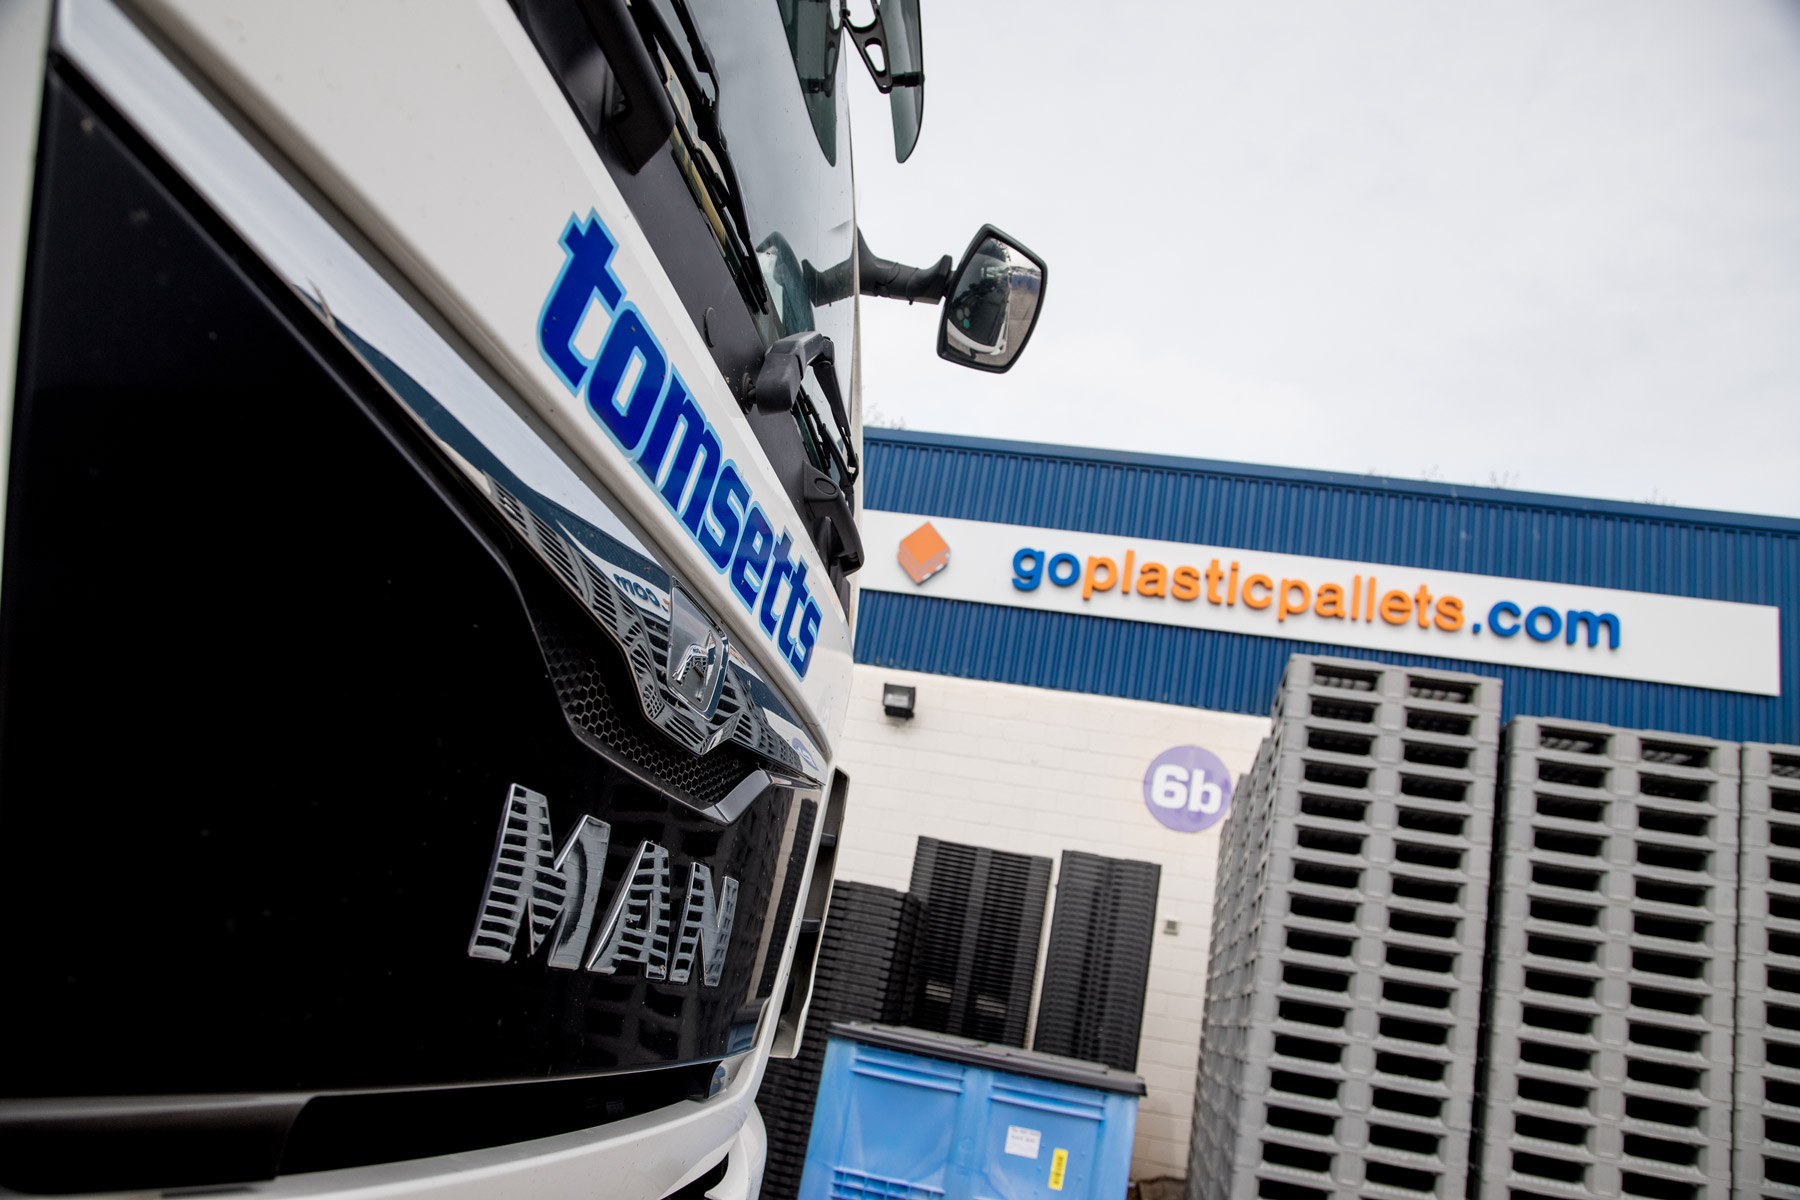 A tomsetts lorry is pictured picking up pallets for distribution across the UK and Europe.